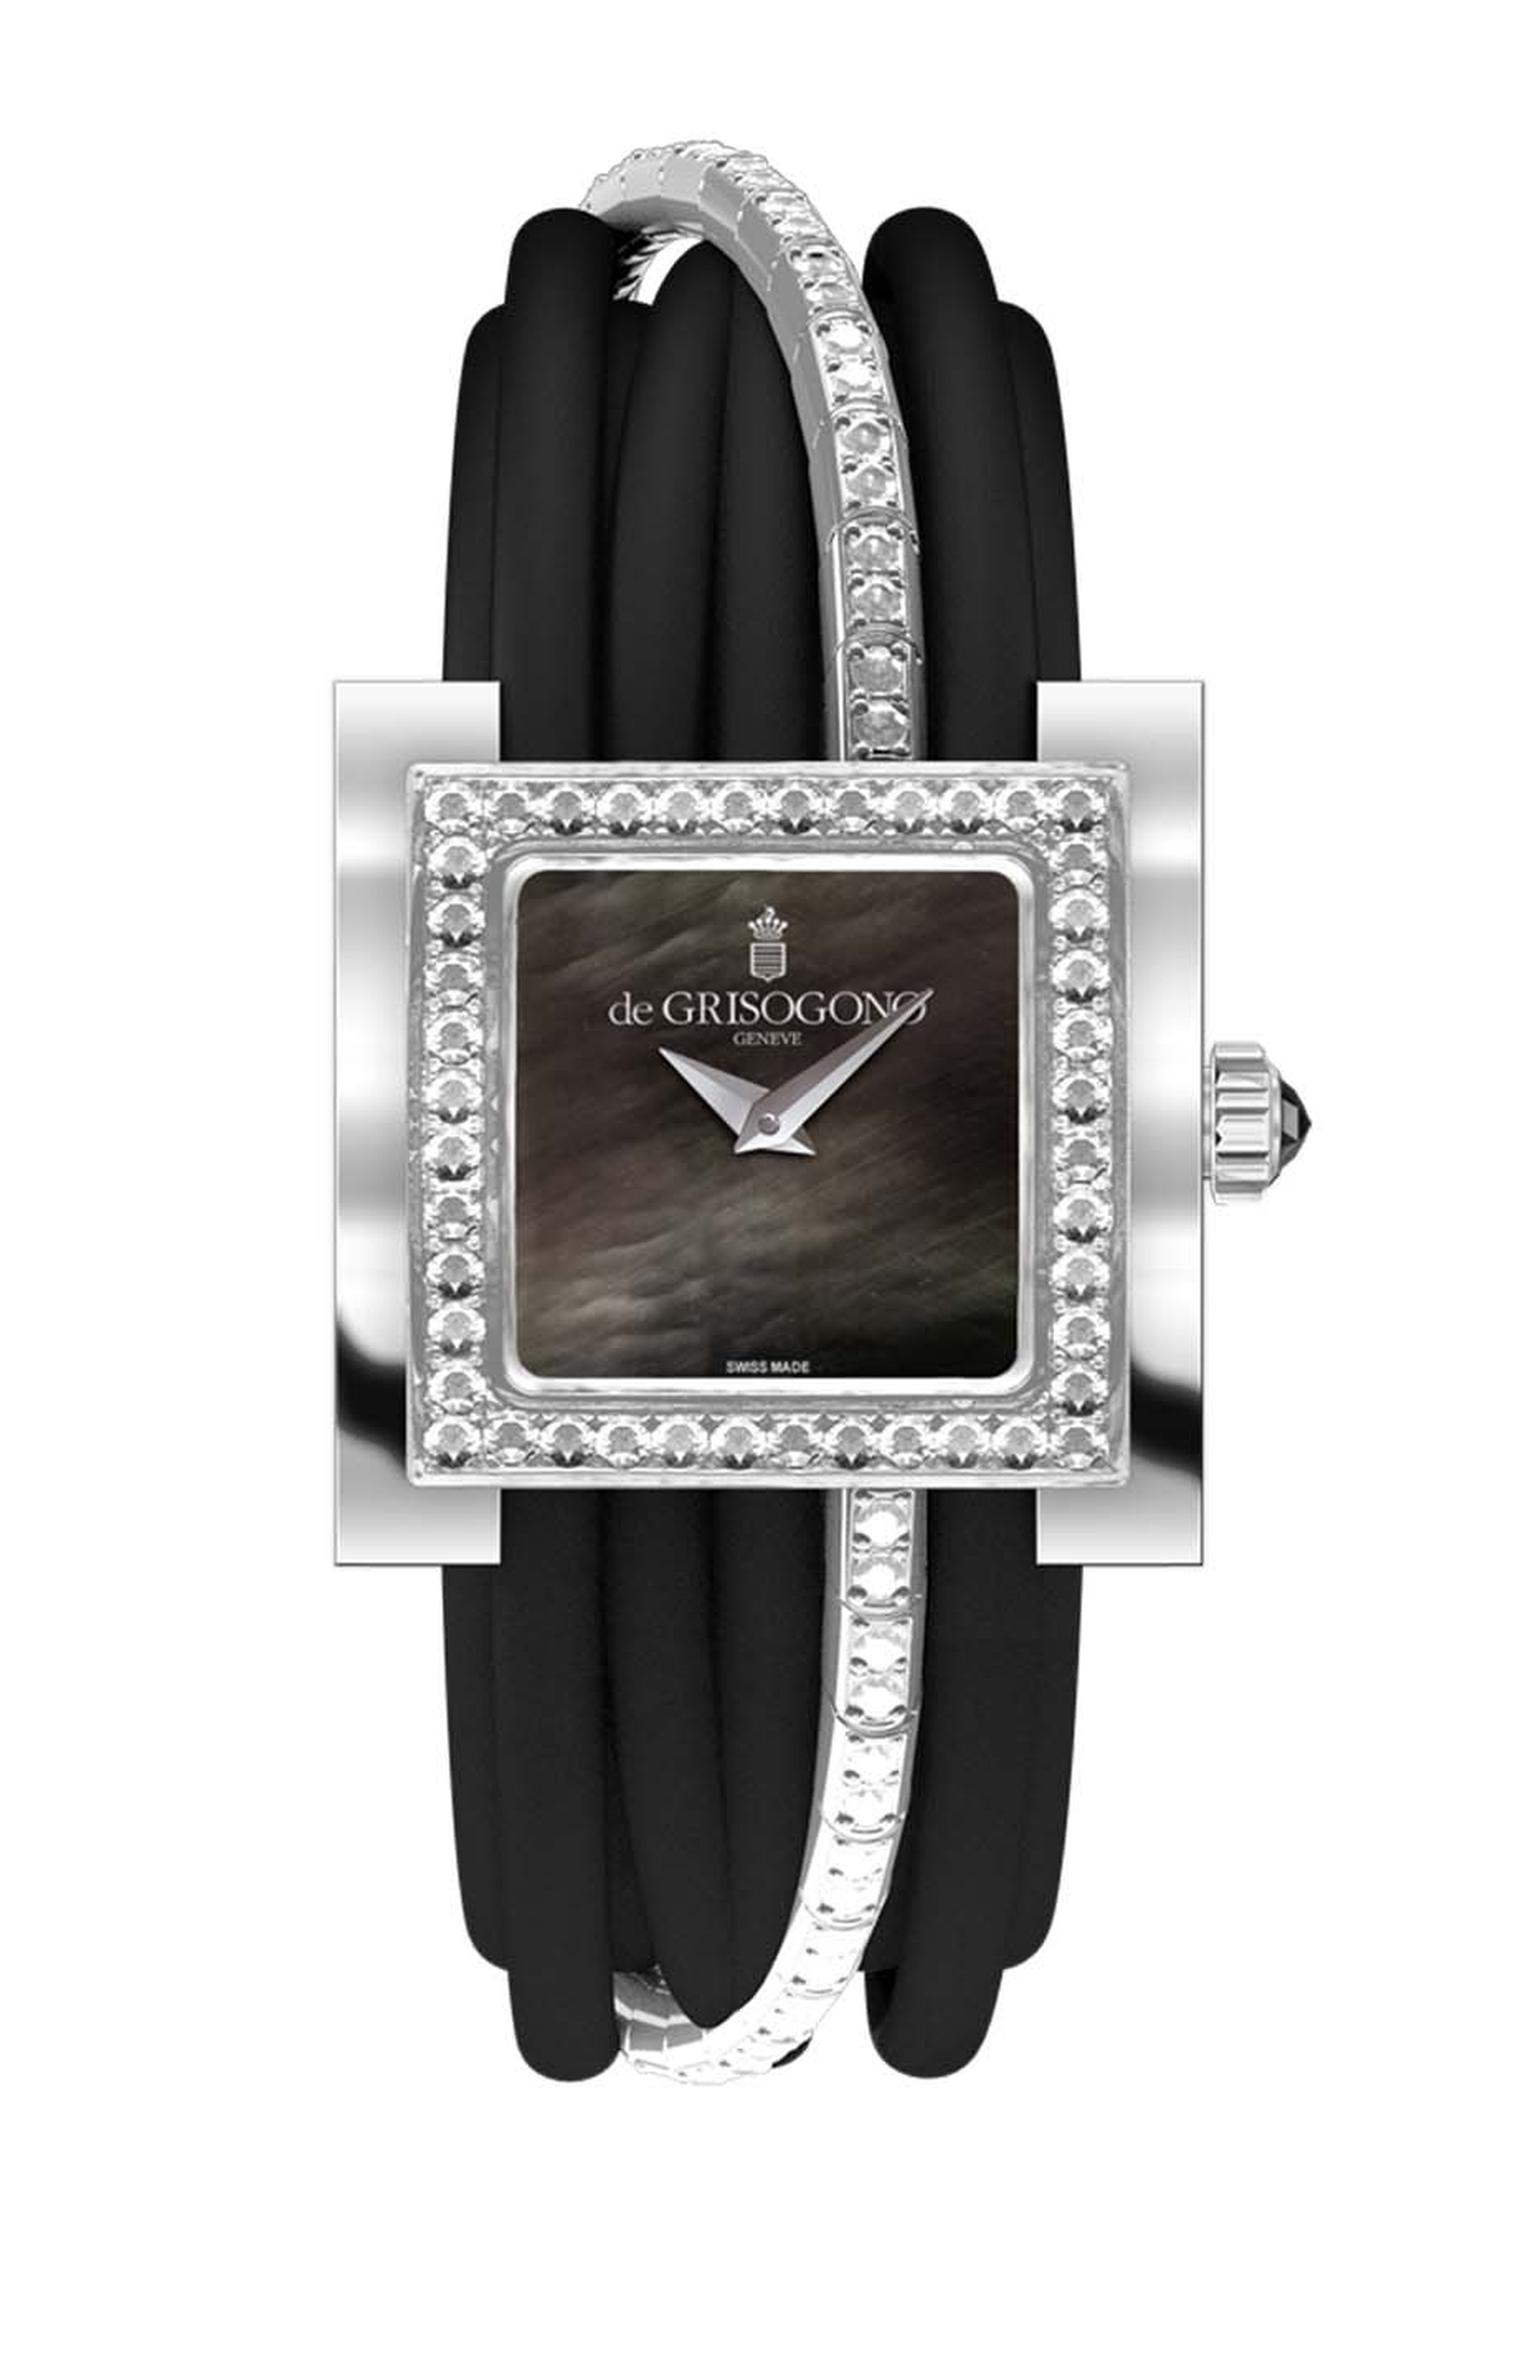 de GRISOGONO Allegra watch in white gold featuring a black mother-of-pearl dial with white gold dauphine hands and a bezel set with 44 white diamonds as well as a white gold clasp set with 40 diamonds